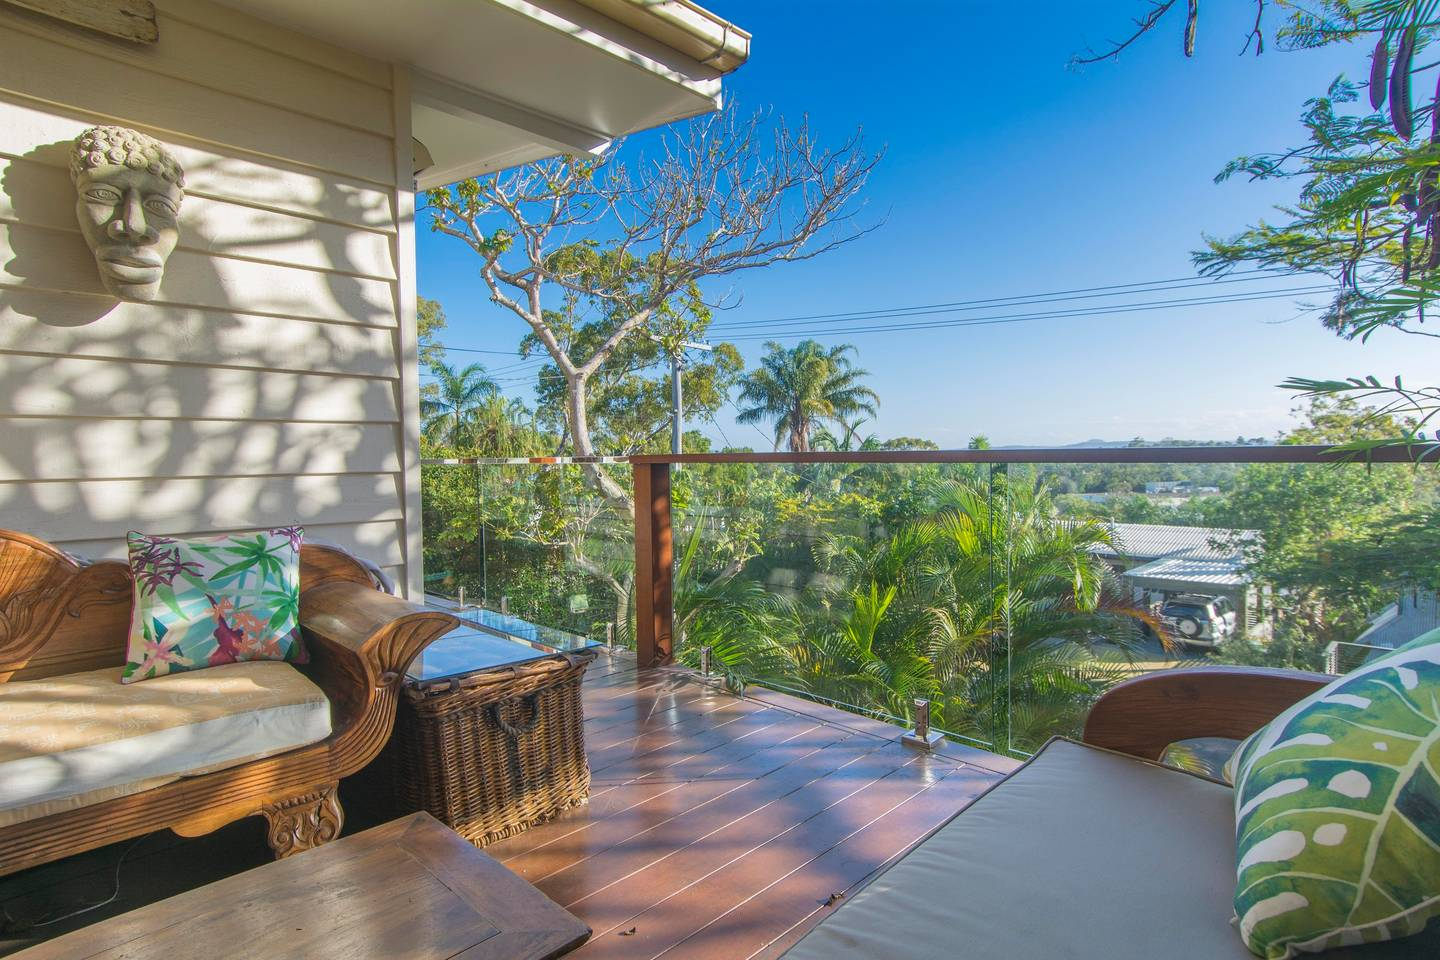 A view from a balcony of a home on the Noosa hill